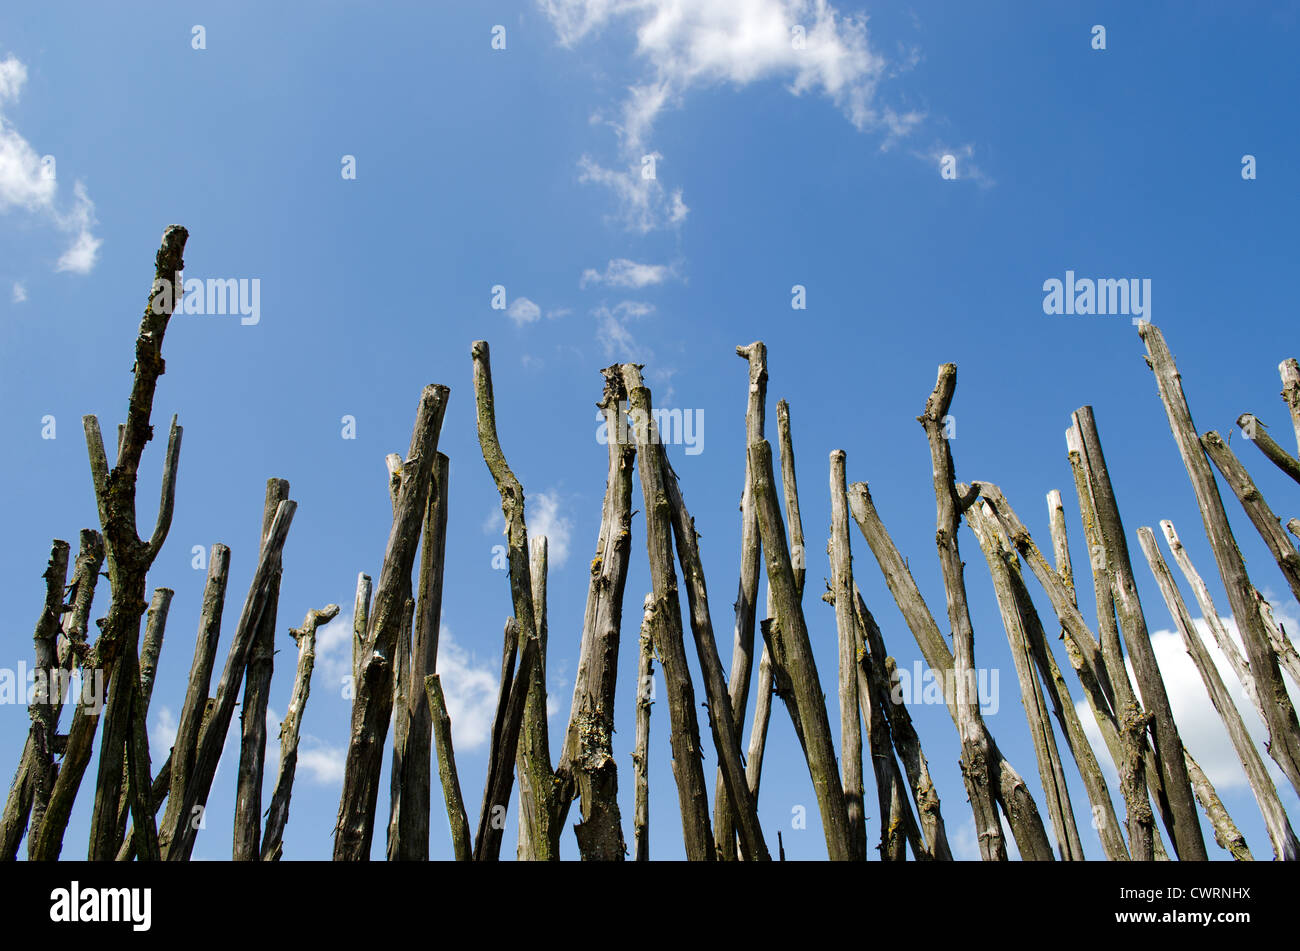 fence made of branches stockfotos fence made of branches bilder alamy. Black Bedroom Furniture Sets. Home Design Ideas